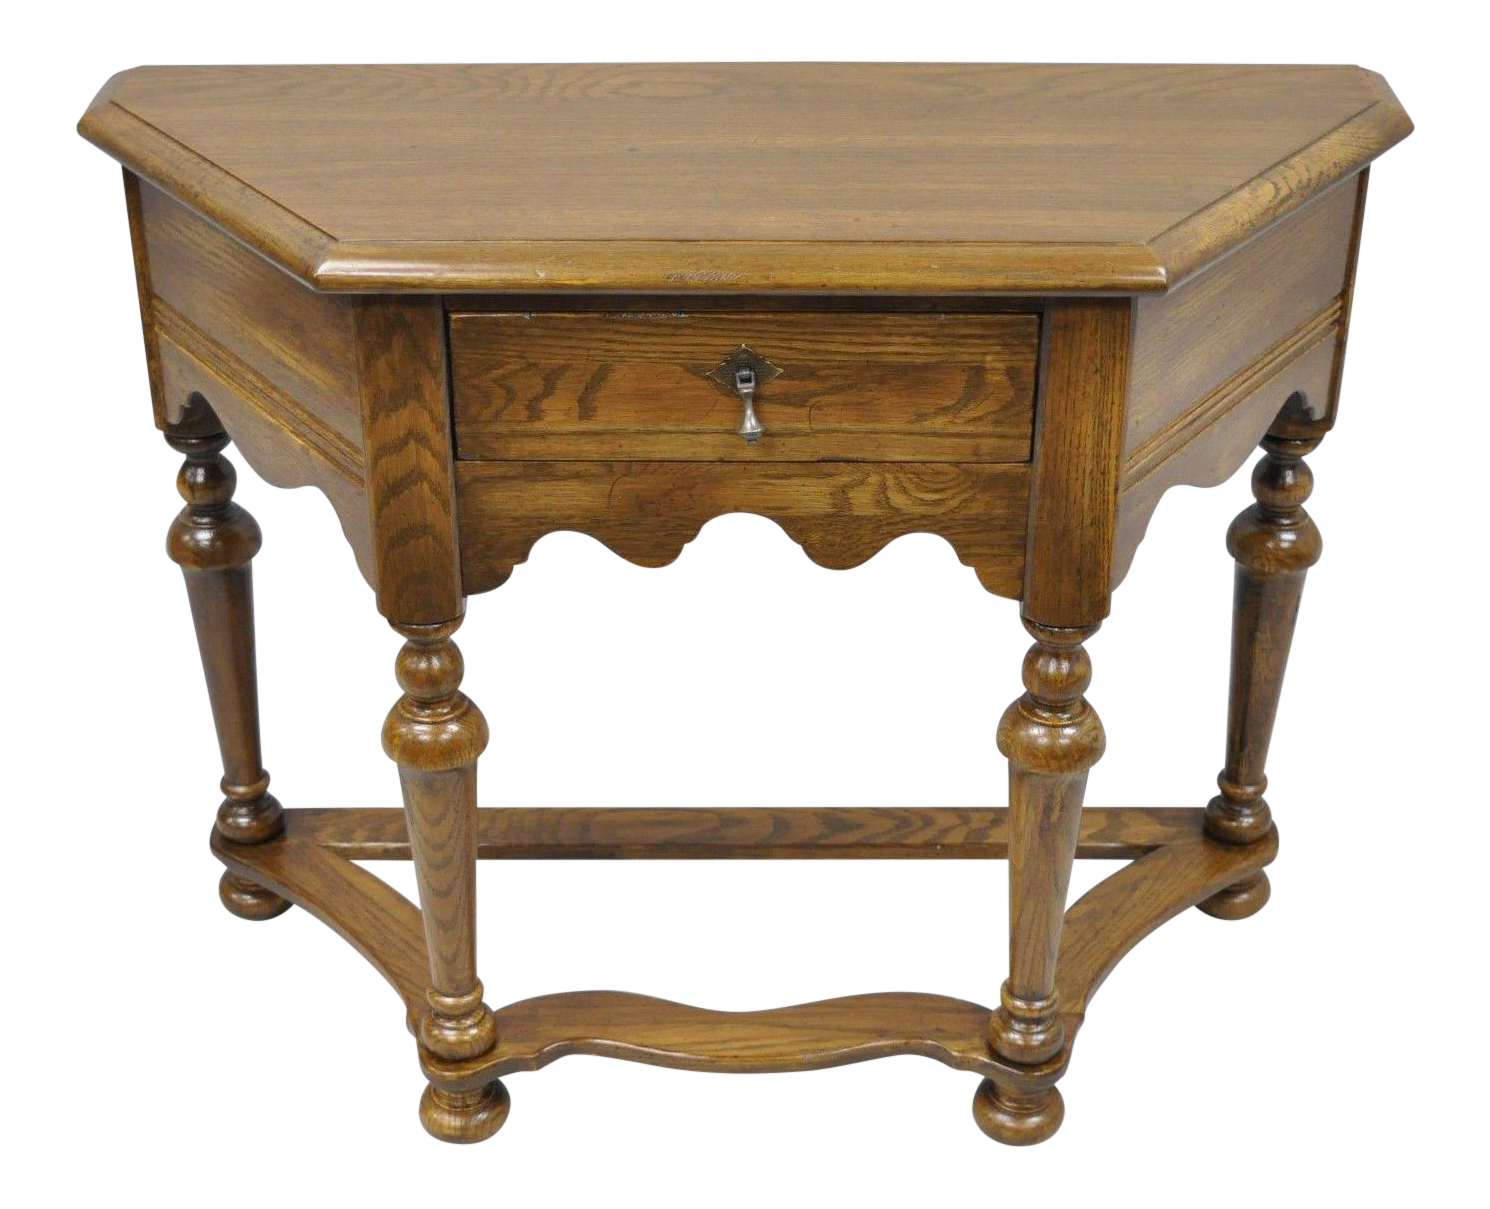 Beau Ethan Allen Royal Charter Oak Wood Console Hall Table One Drawer Vintage  Stand